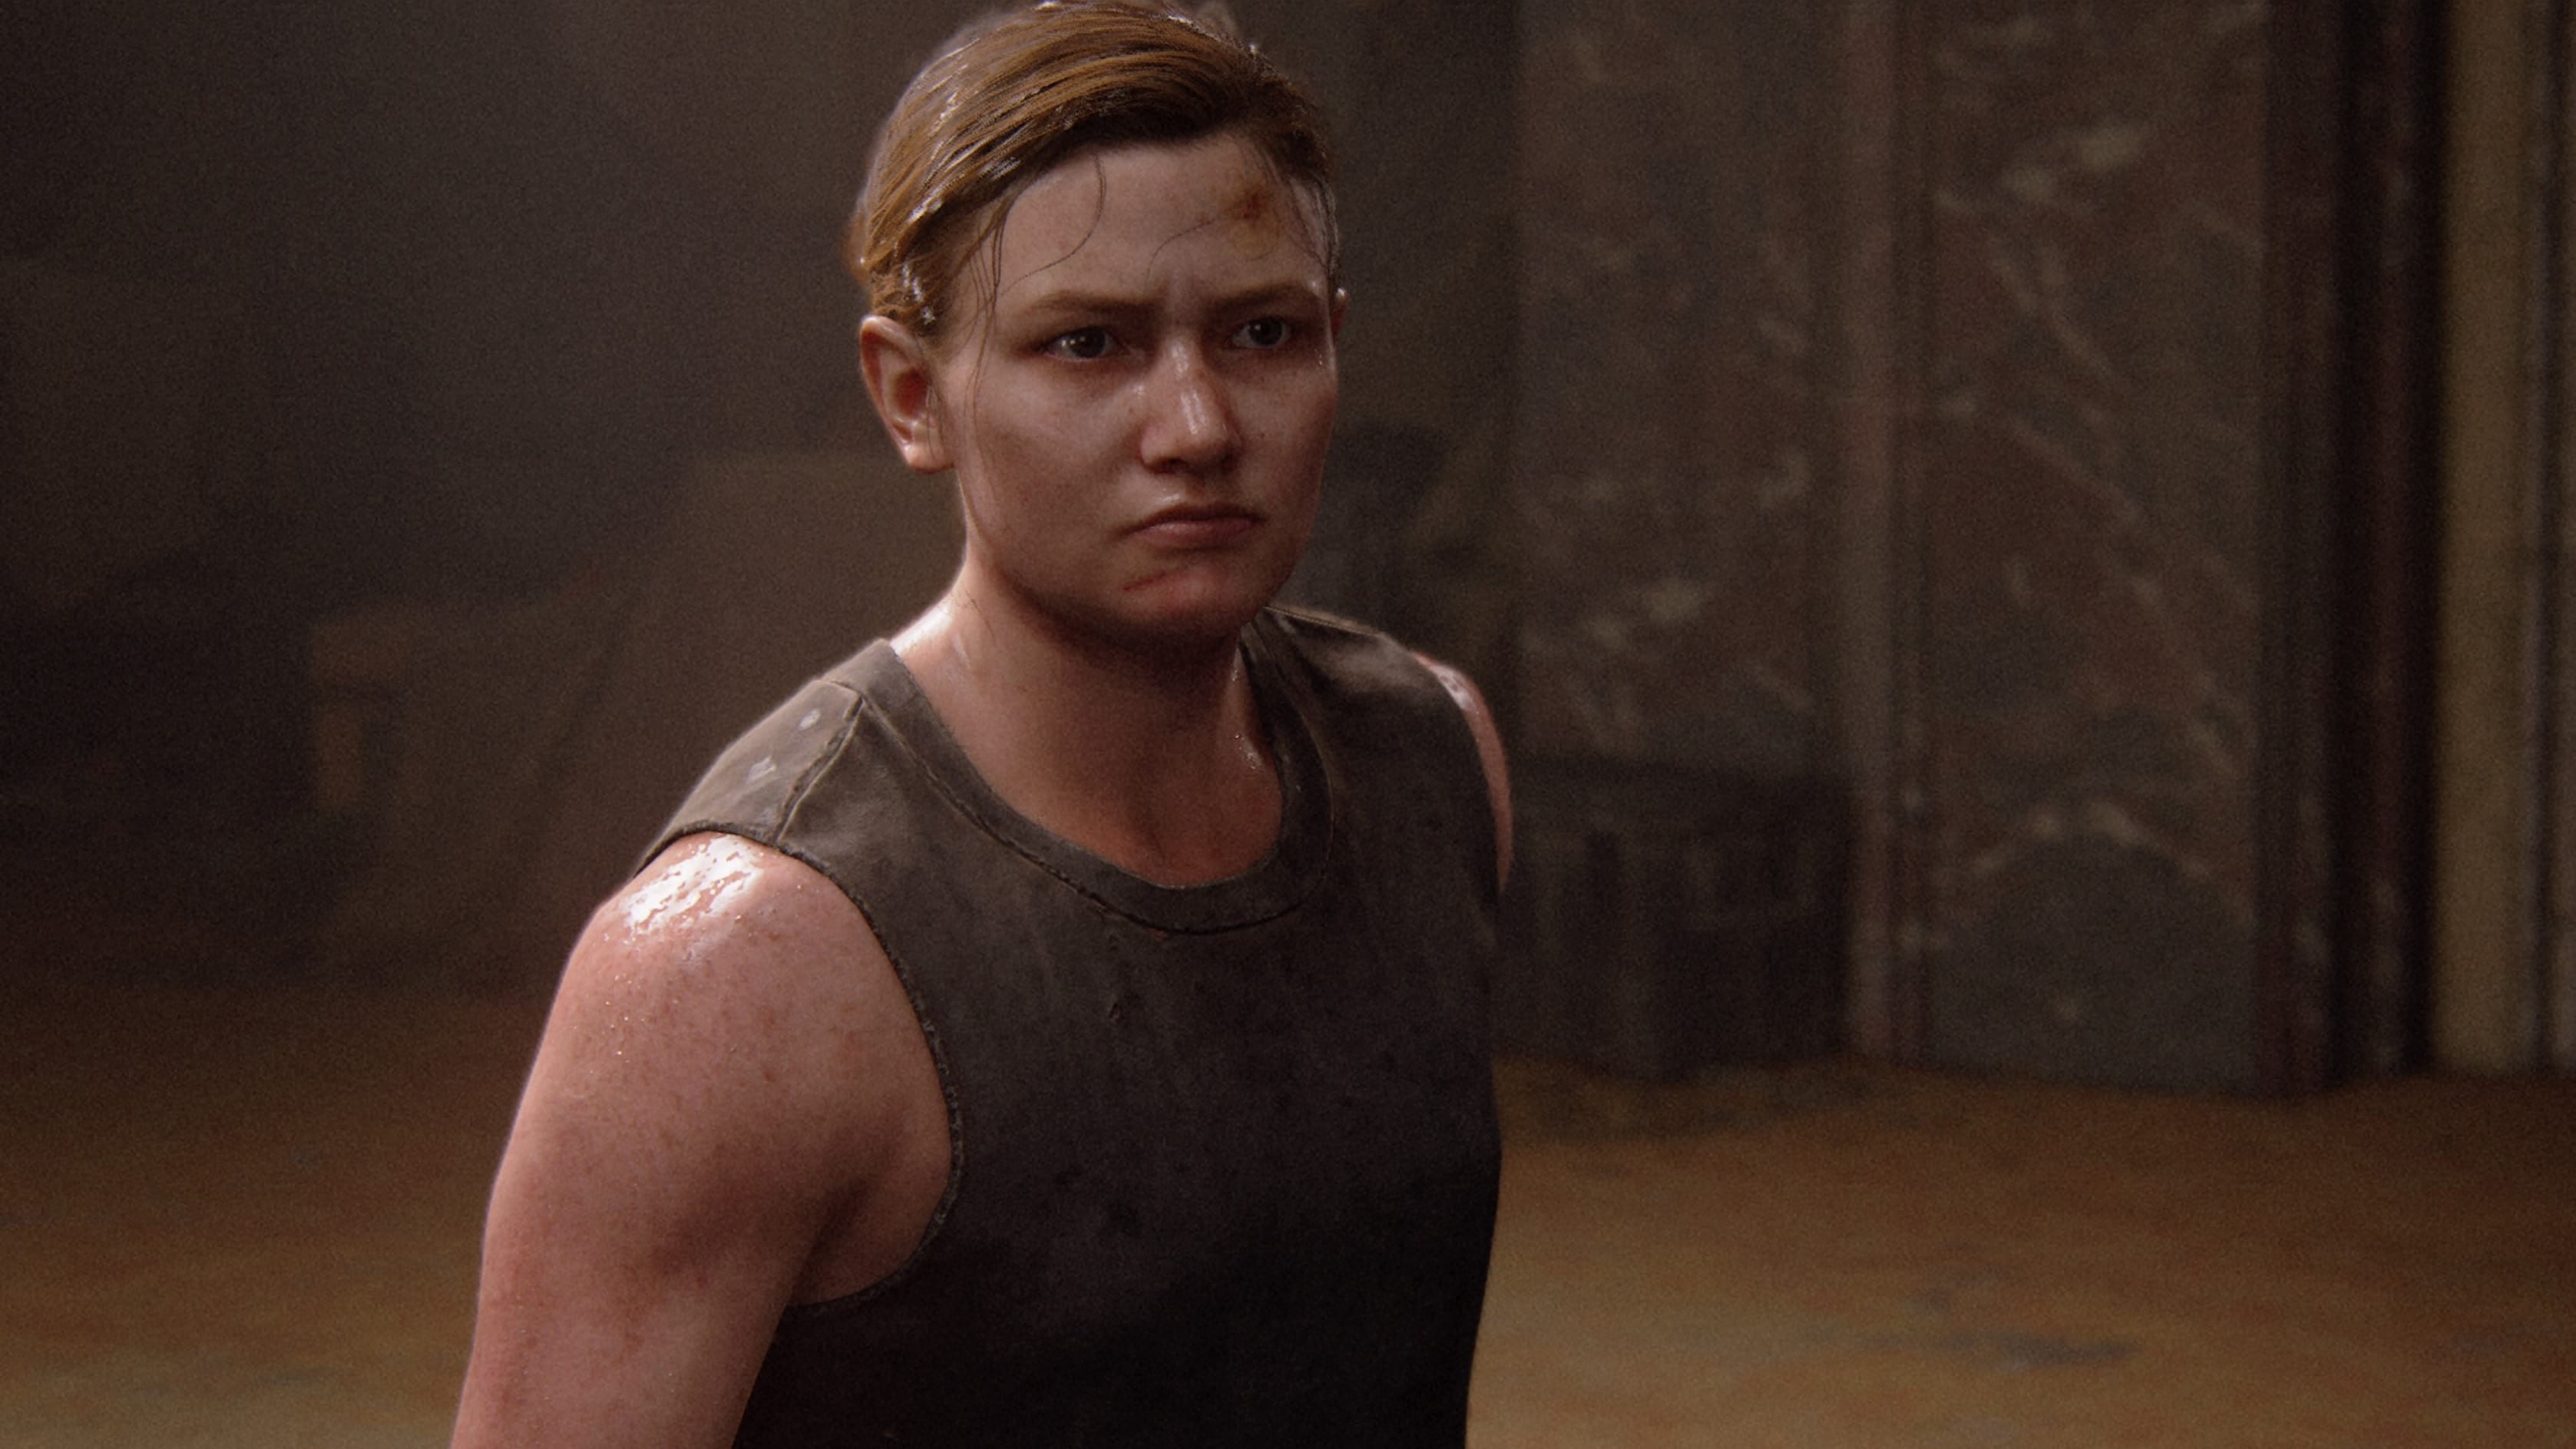 The Last of Us 2 Abby